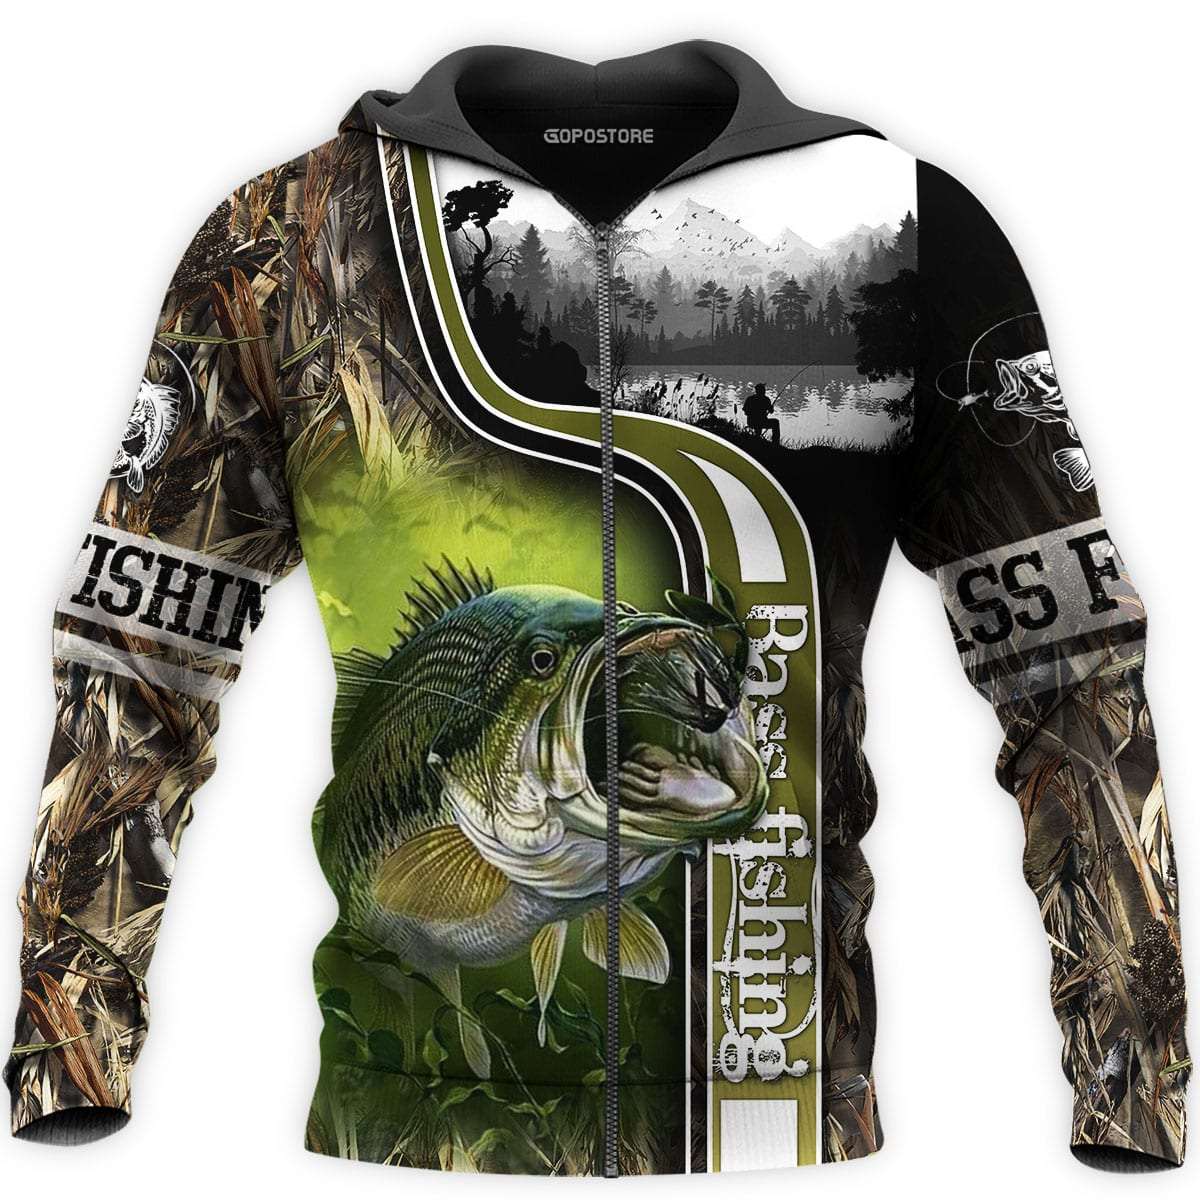 Bass Fishing 3D All Over Printed Shirts for Men and Women 9